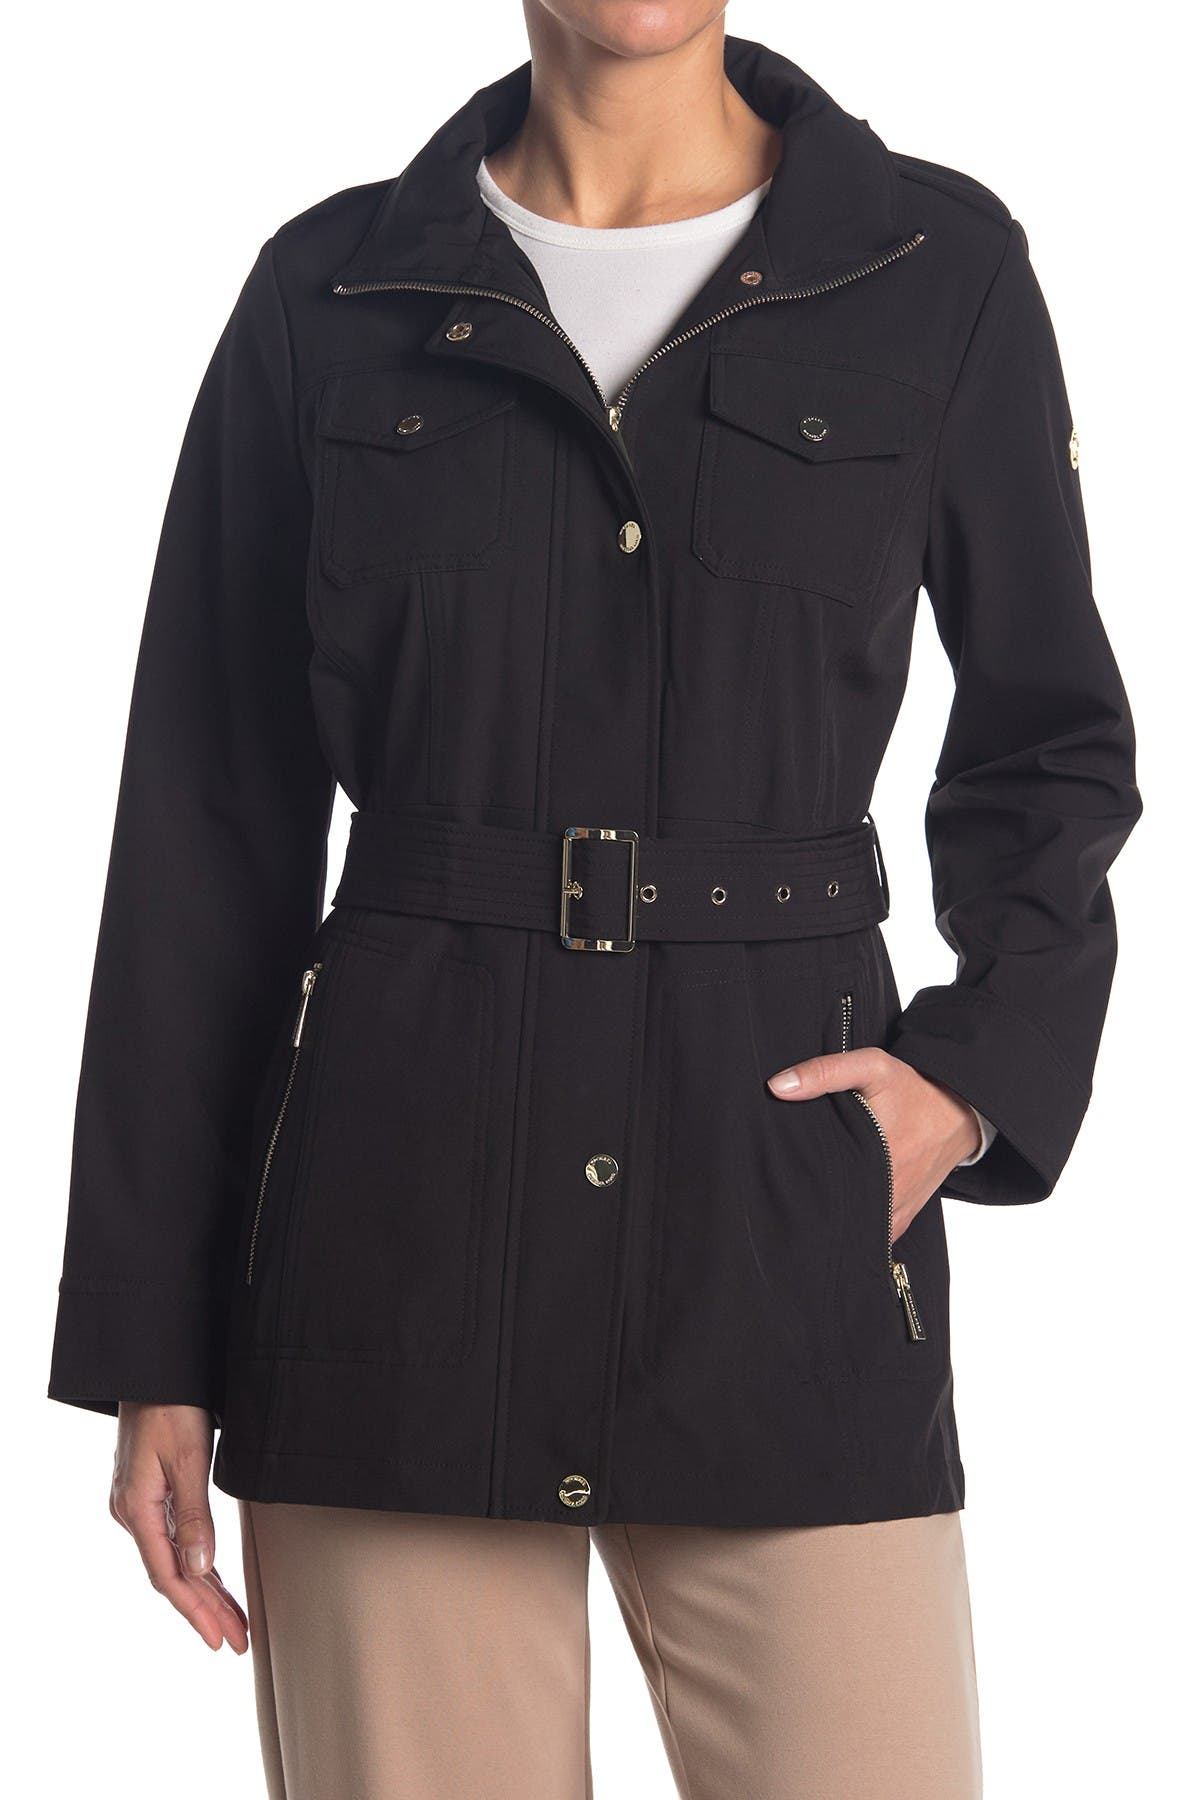 Image of Michael Kors Belted Soft Shell Hooded Jacket